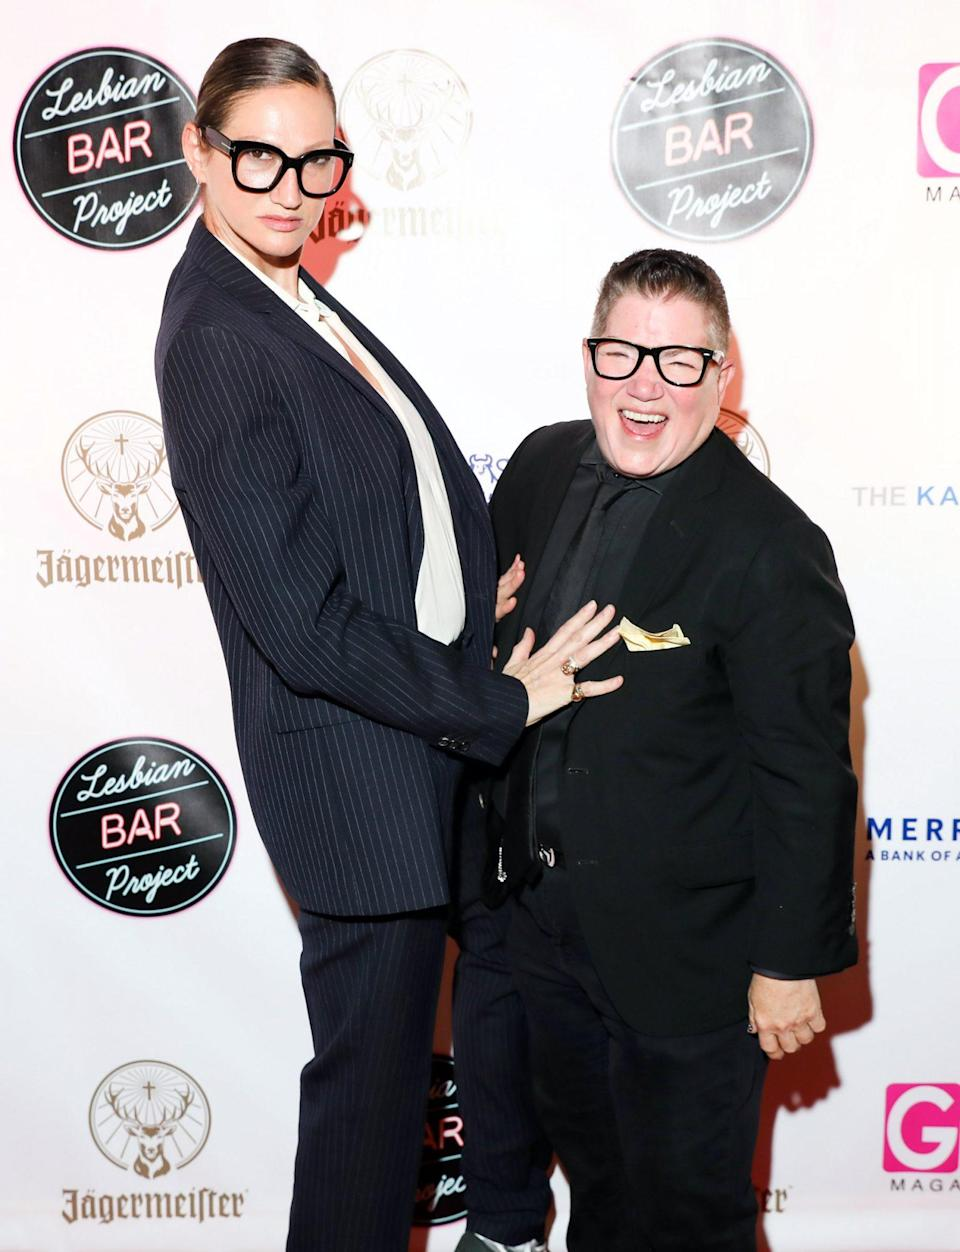 <p>Jenna Lyons and Lea DeLaria get silly on Wednesday night at The Lesbian Bar Project presented by Jagermeister at Harbor NYC.</p>